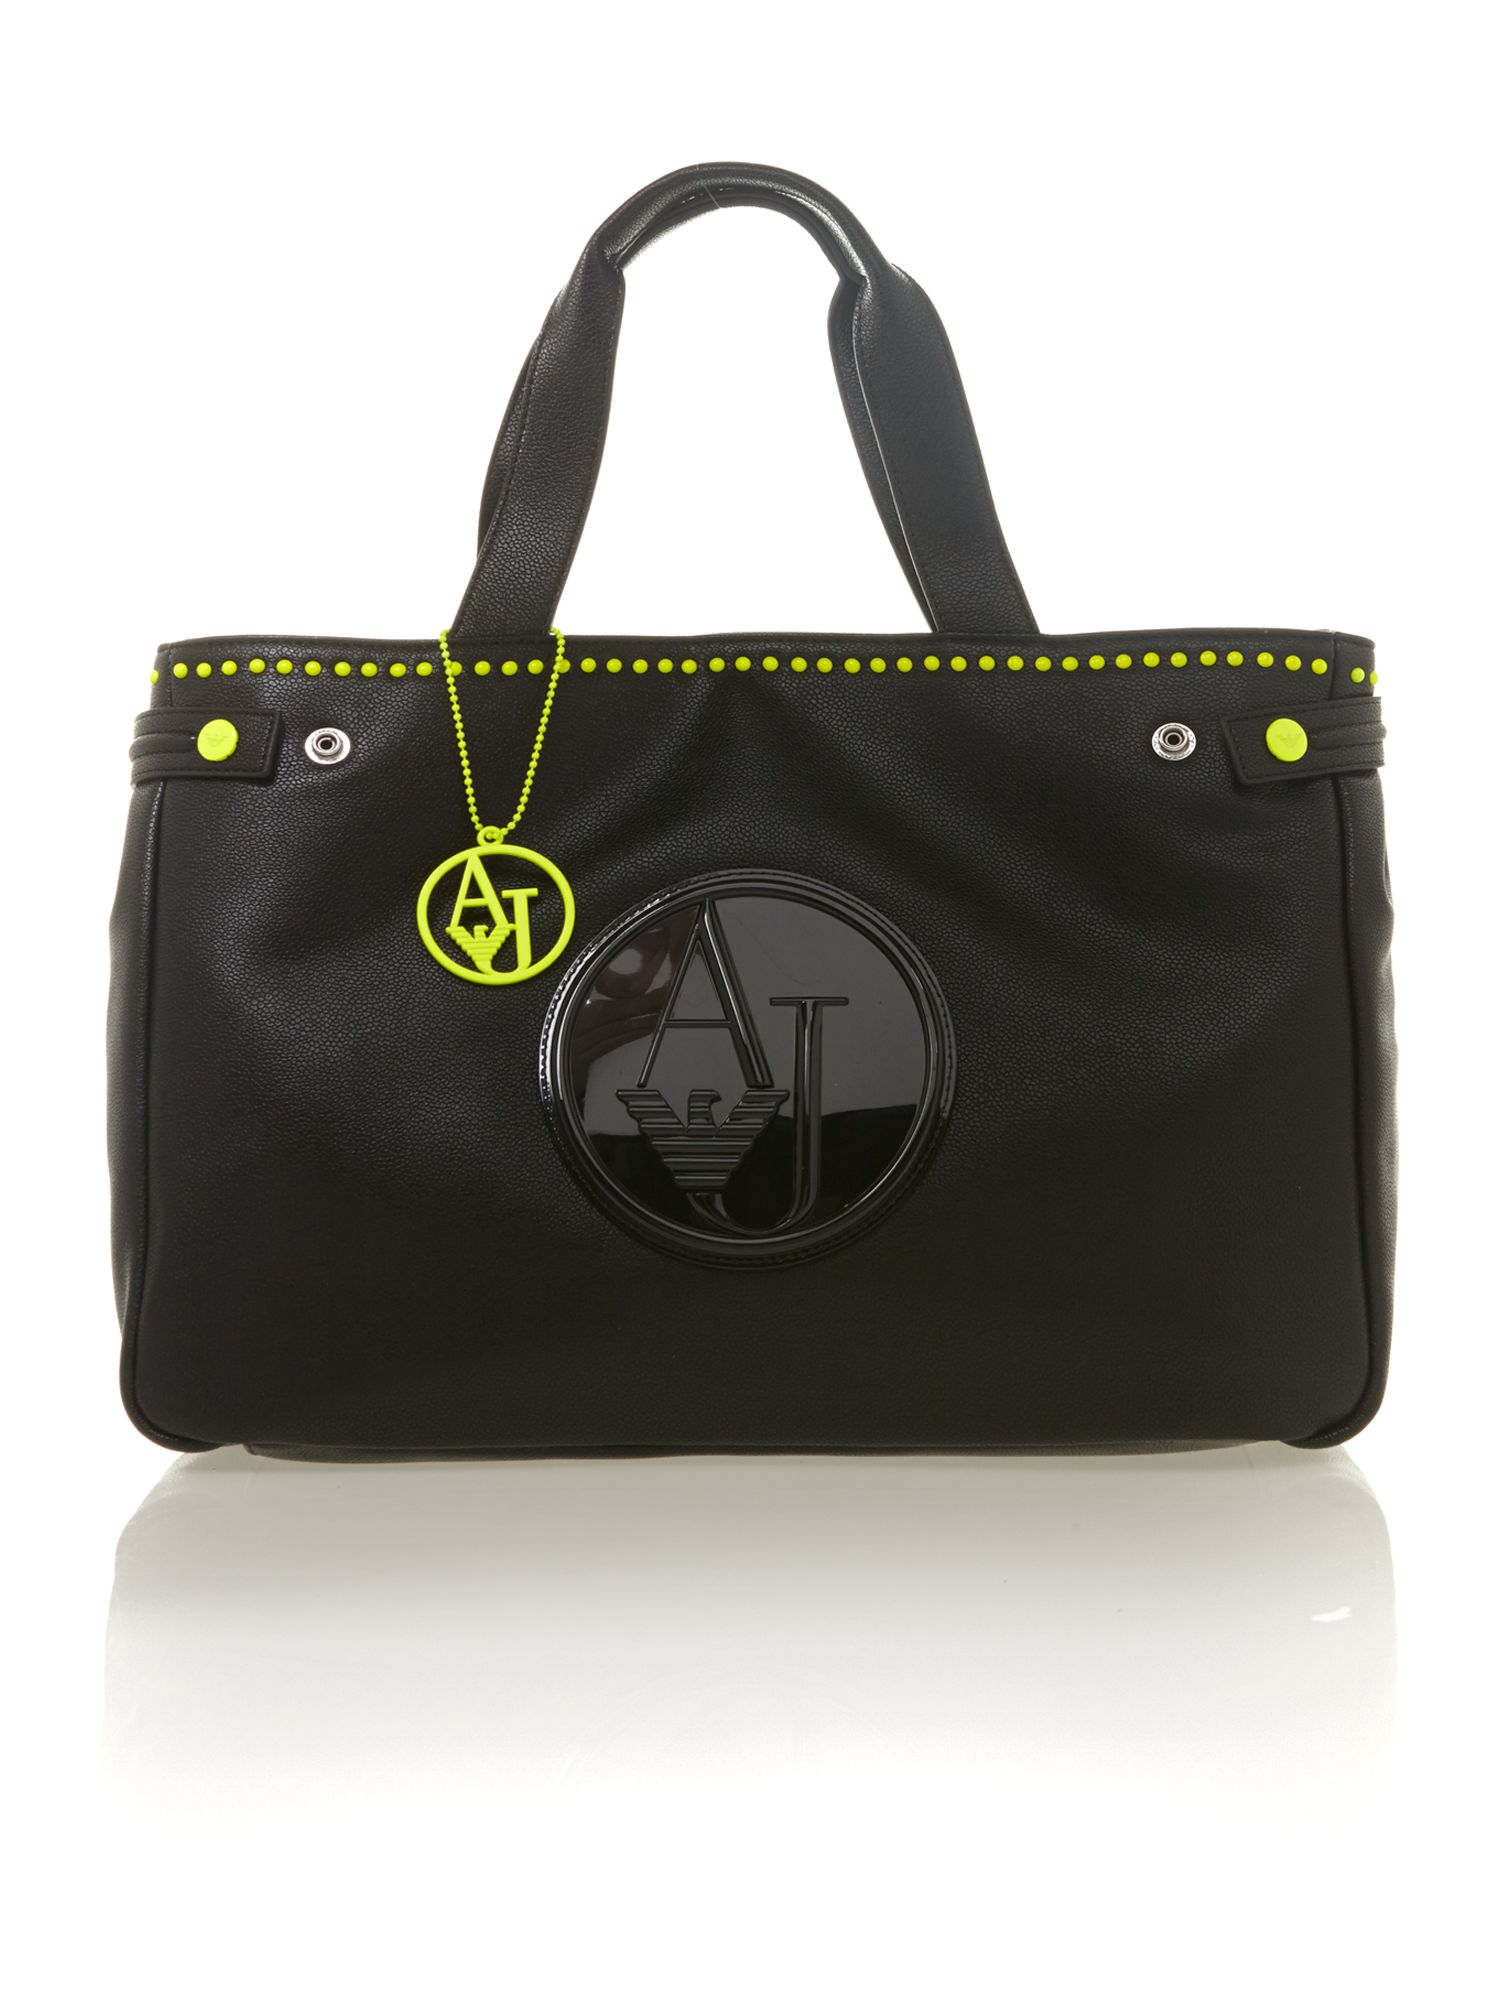 Black neon stud tote bag